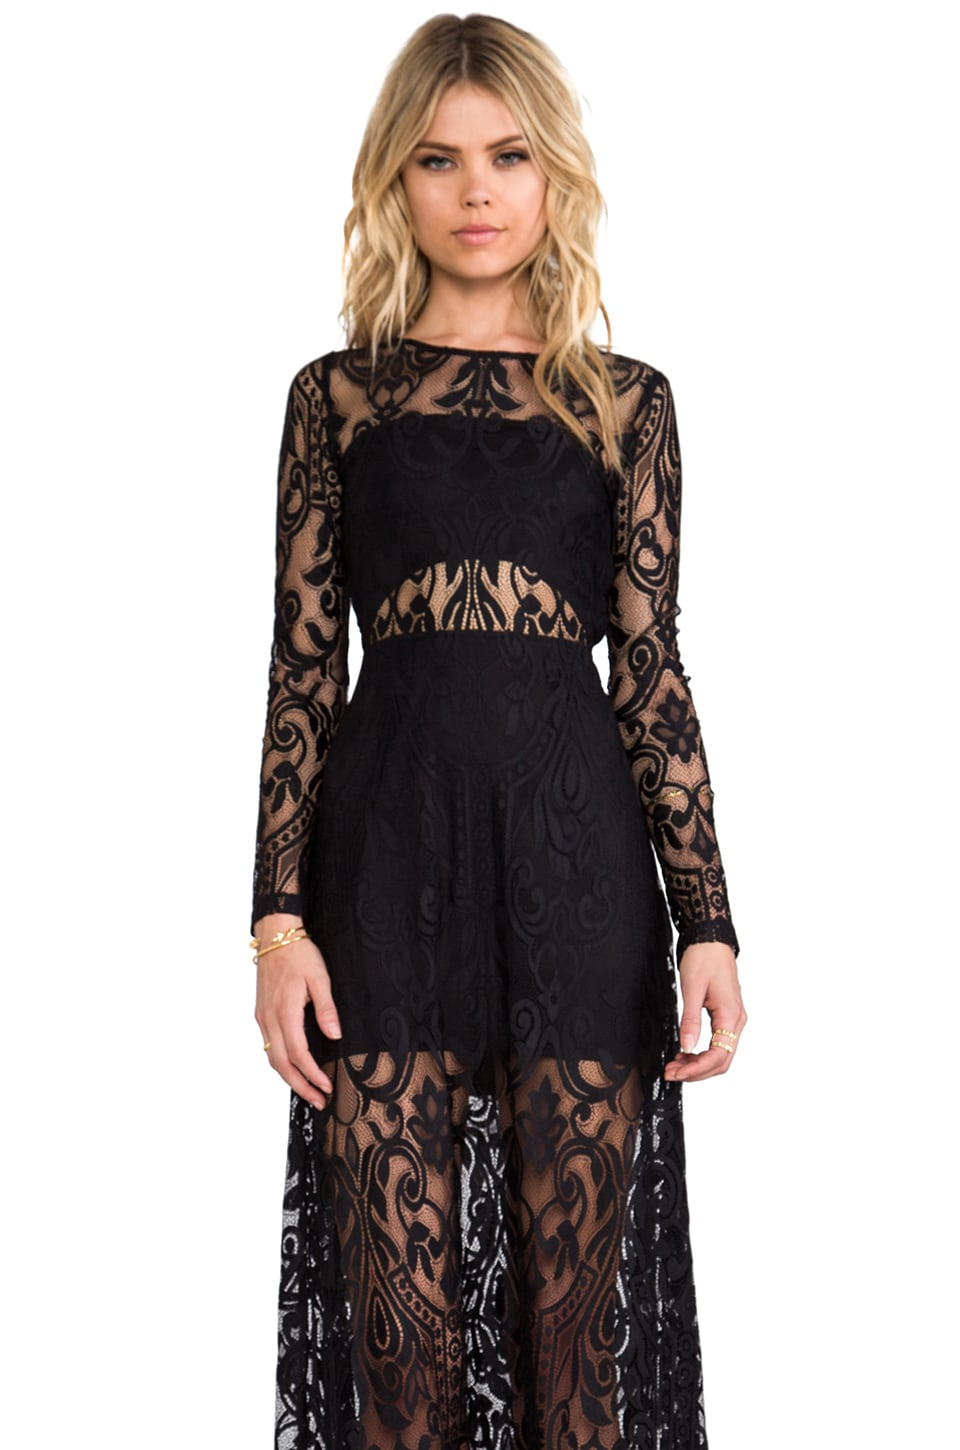 Alexis Marisol Dress in Black Lace